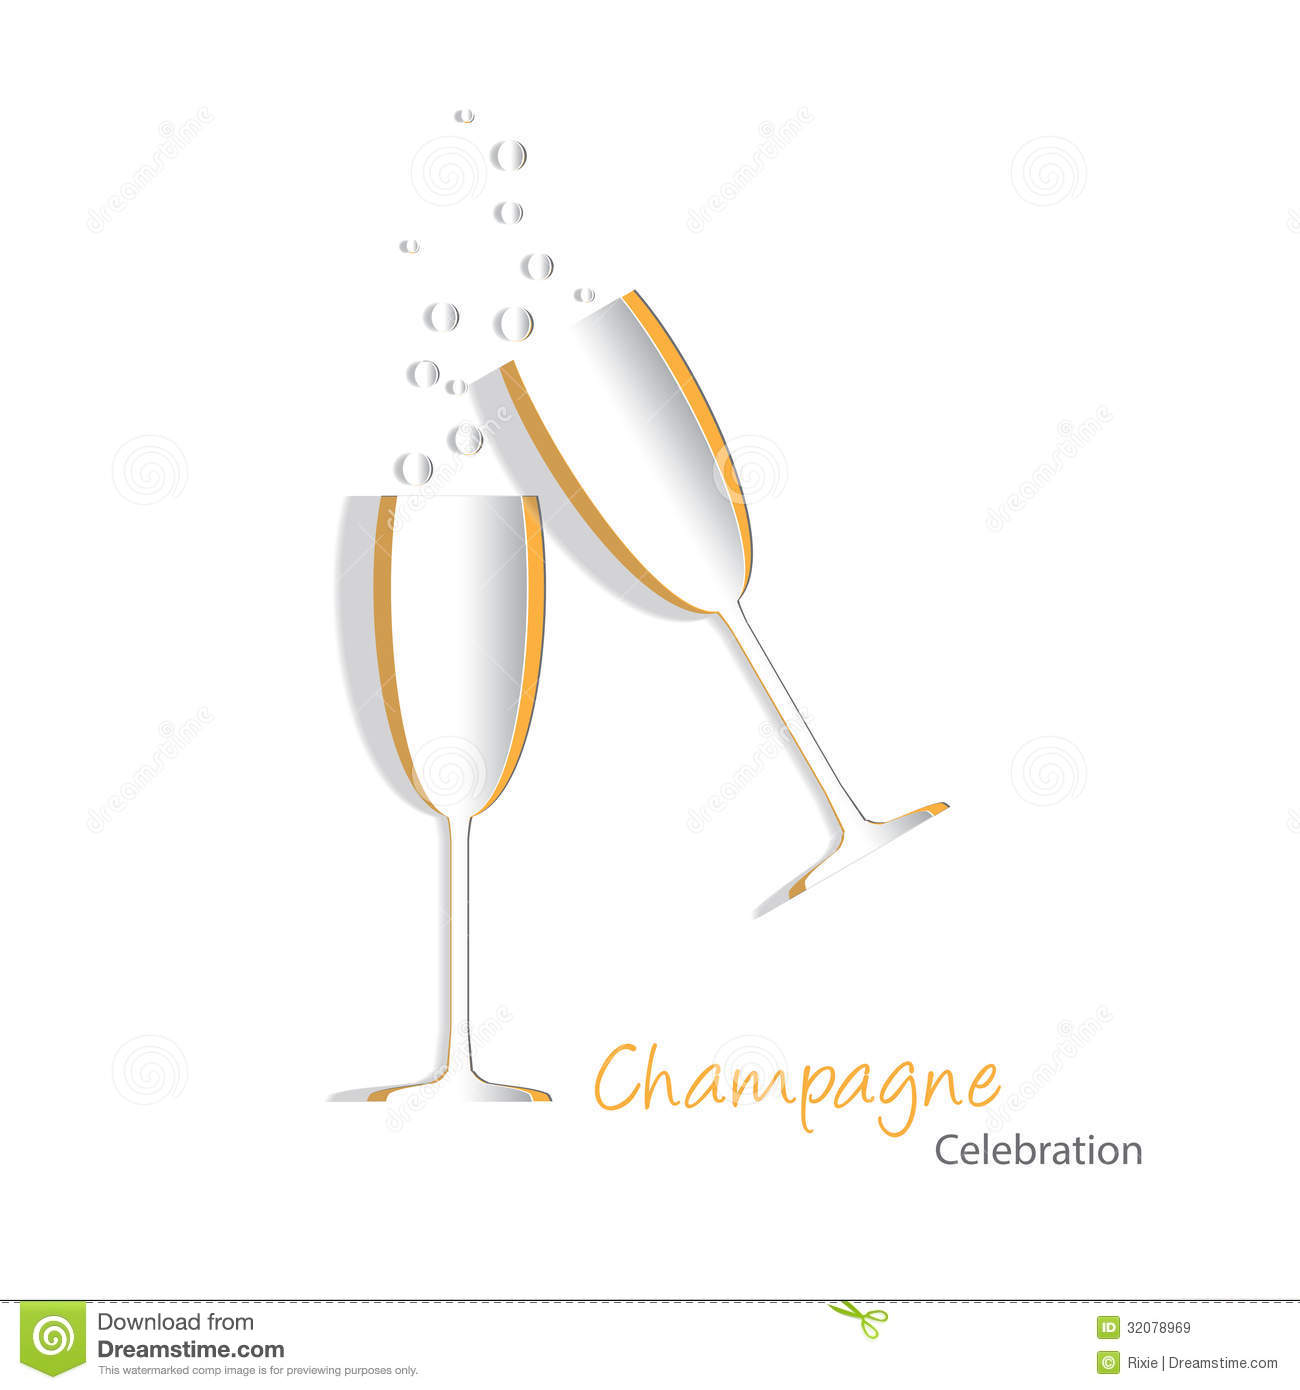 Paper cutouts of champagne glasses with bubbles also available in